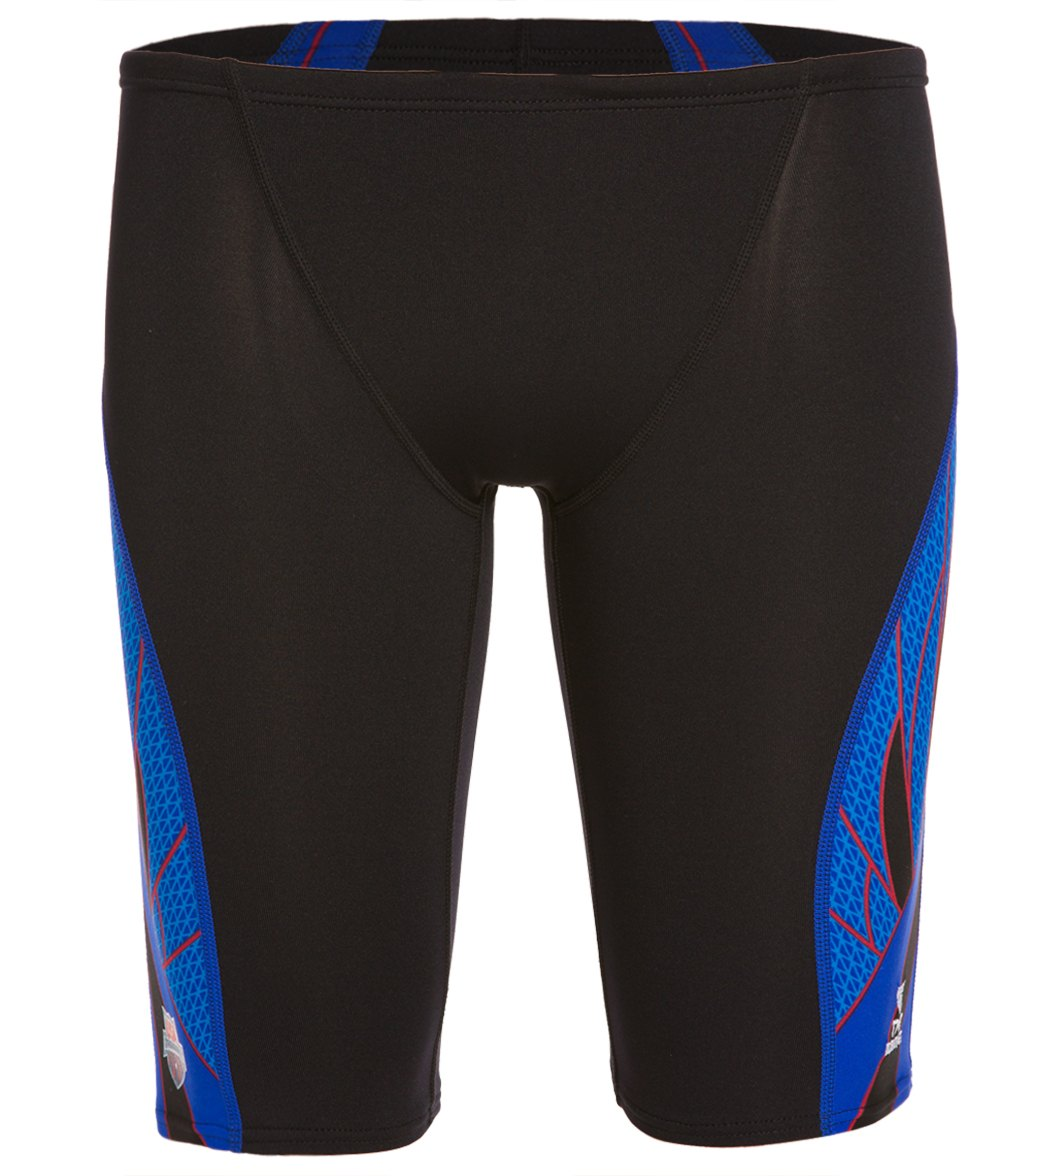 53bb29c265 TYR USA Swimming Phoenix Splice Men's Jammer at SwimOutlet.com - Free  Shipping